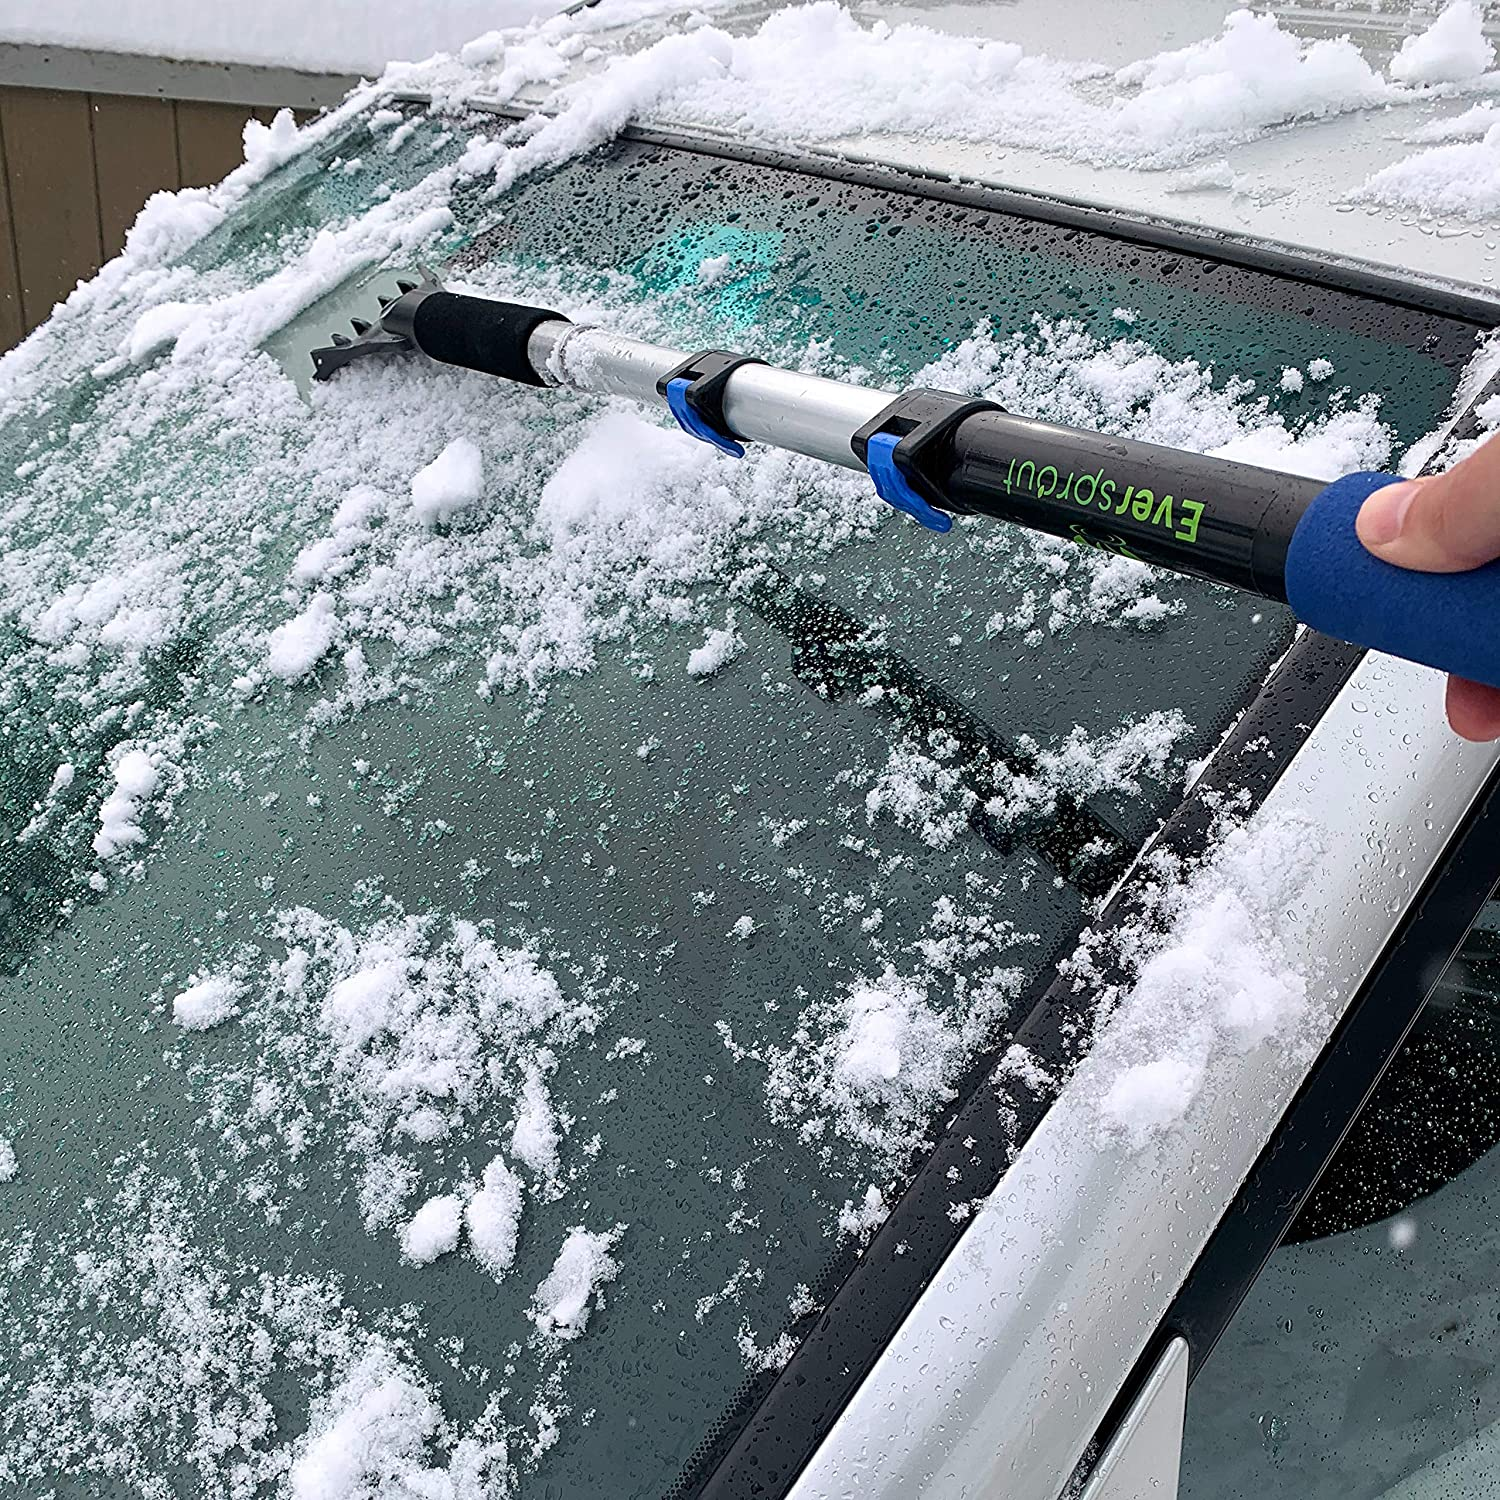 Windows Ice Roof | 8-10 Ft Reach Easily Remove Frost EVERSPROUT SnowBuster 1.5-to-4 Foot Kit with Extension-Pole Snow Long Handle for SUV//Truck//Car Windshield Ice Scraper, Snow Brush, Pole